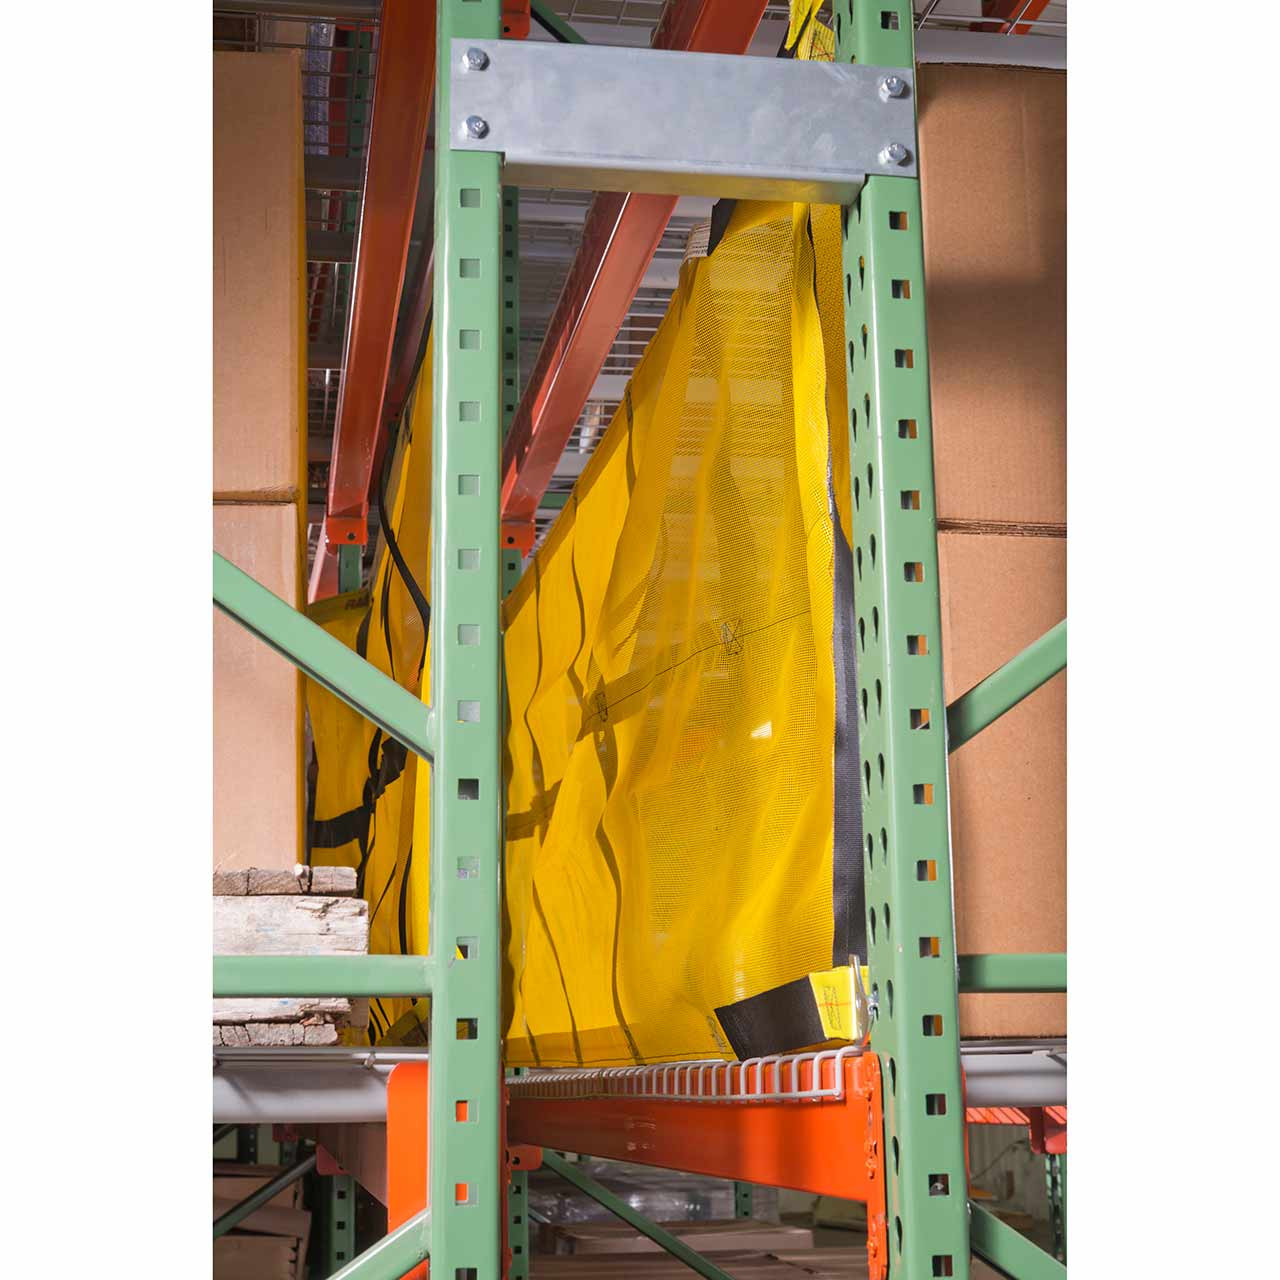 This fixed pallet racking safety net protects stored products from falling off the rack